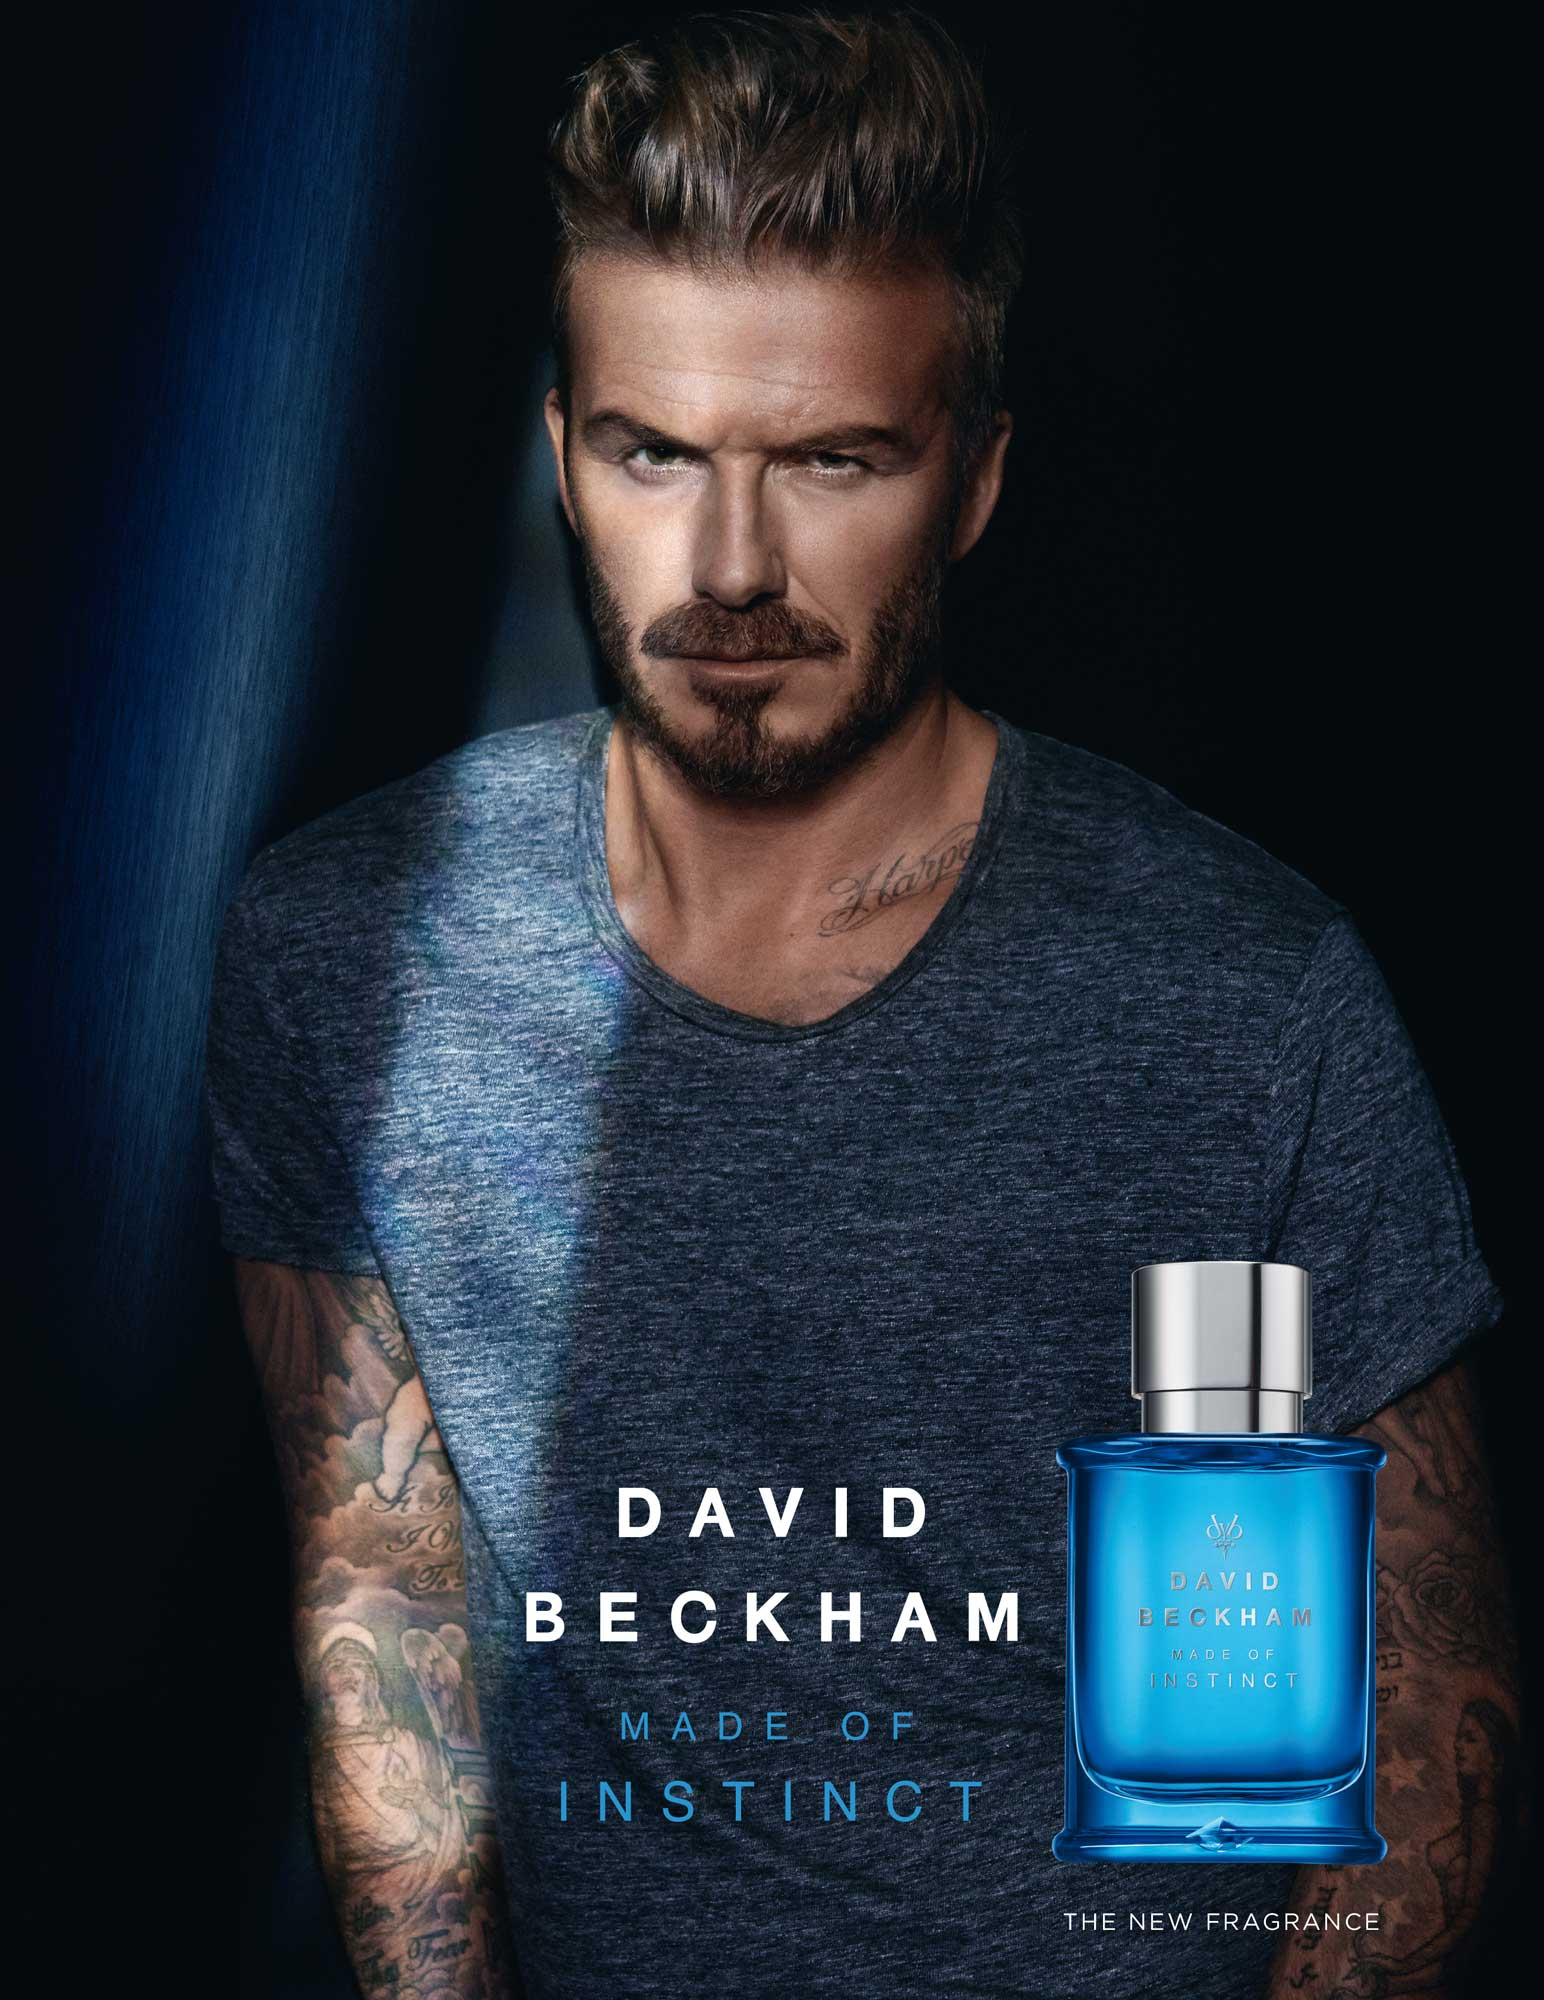 Made Of Instinct David Beckham Cologne A New Fragrance For Men 2017